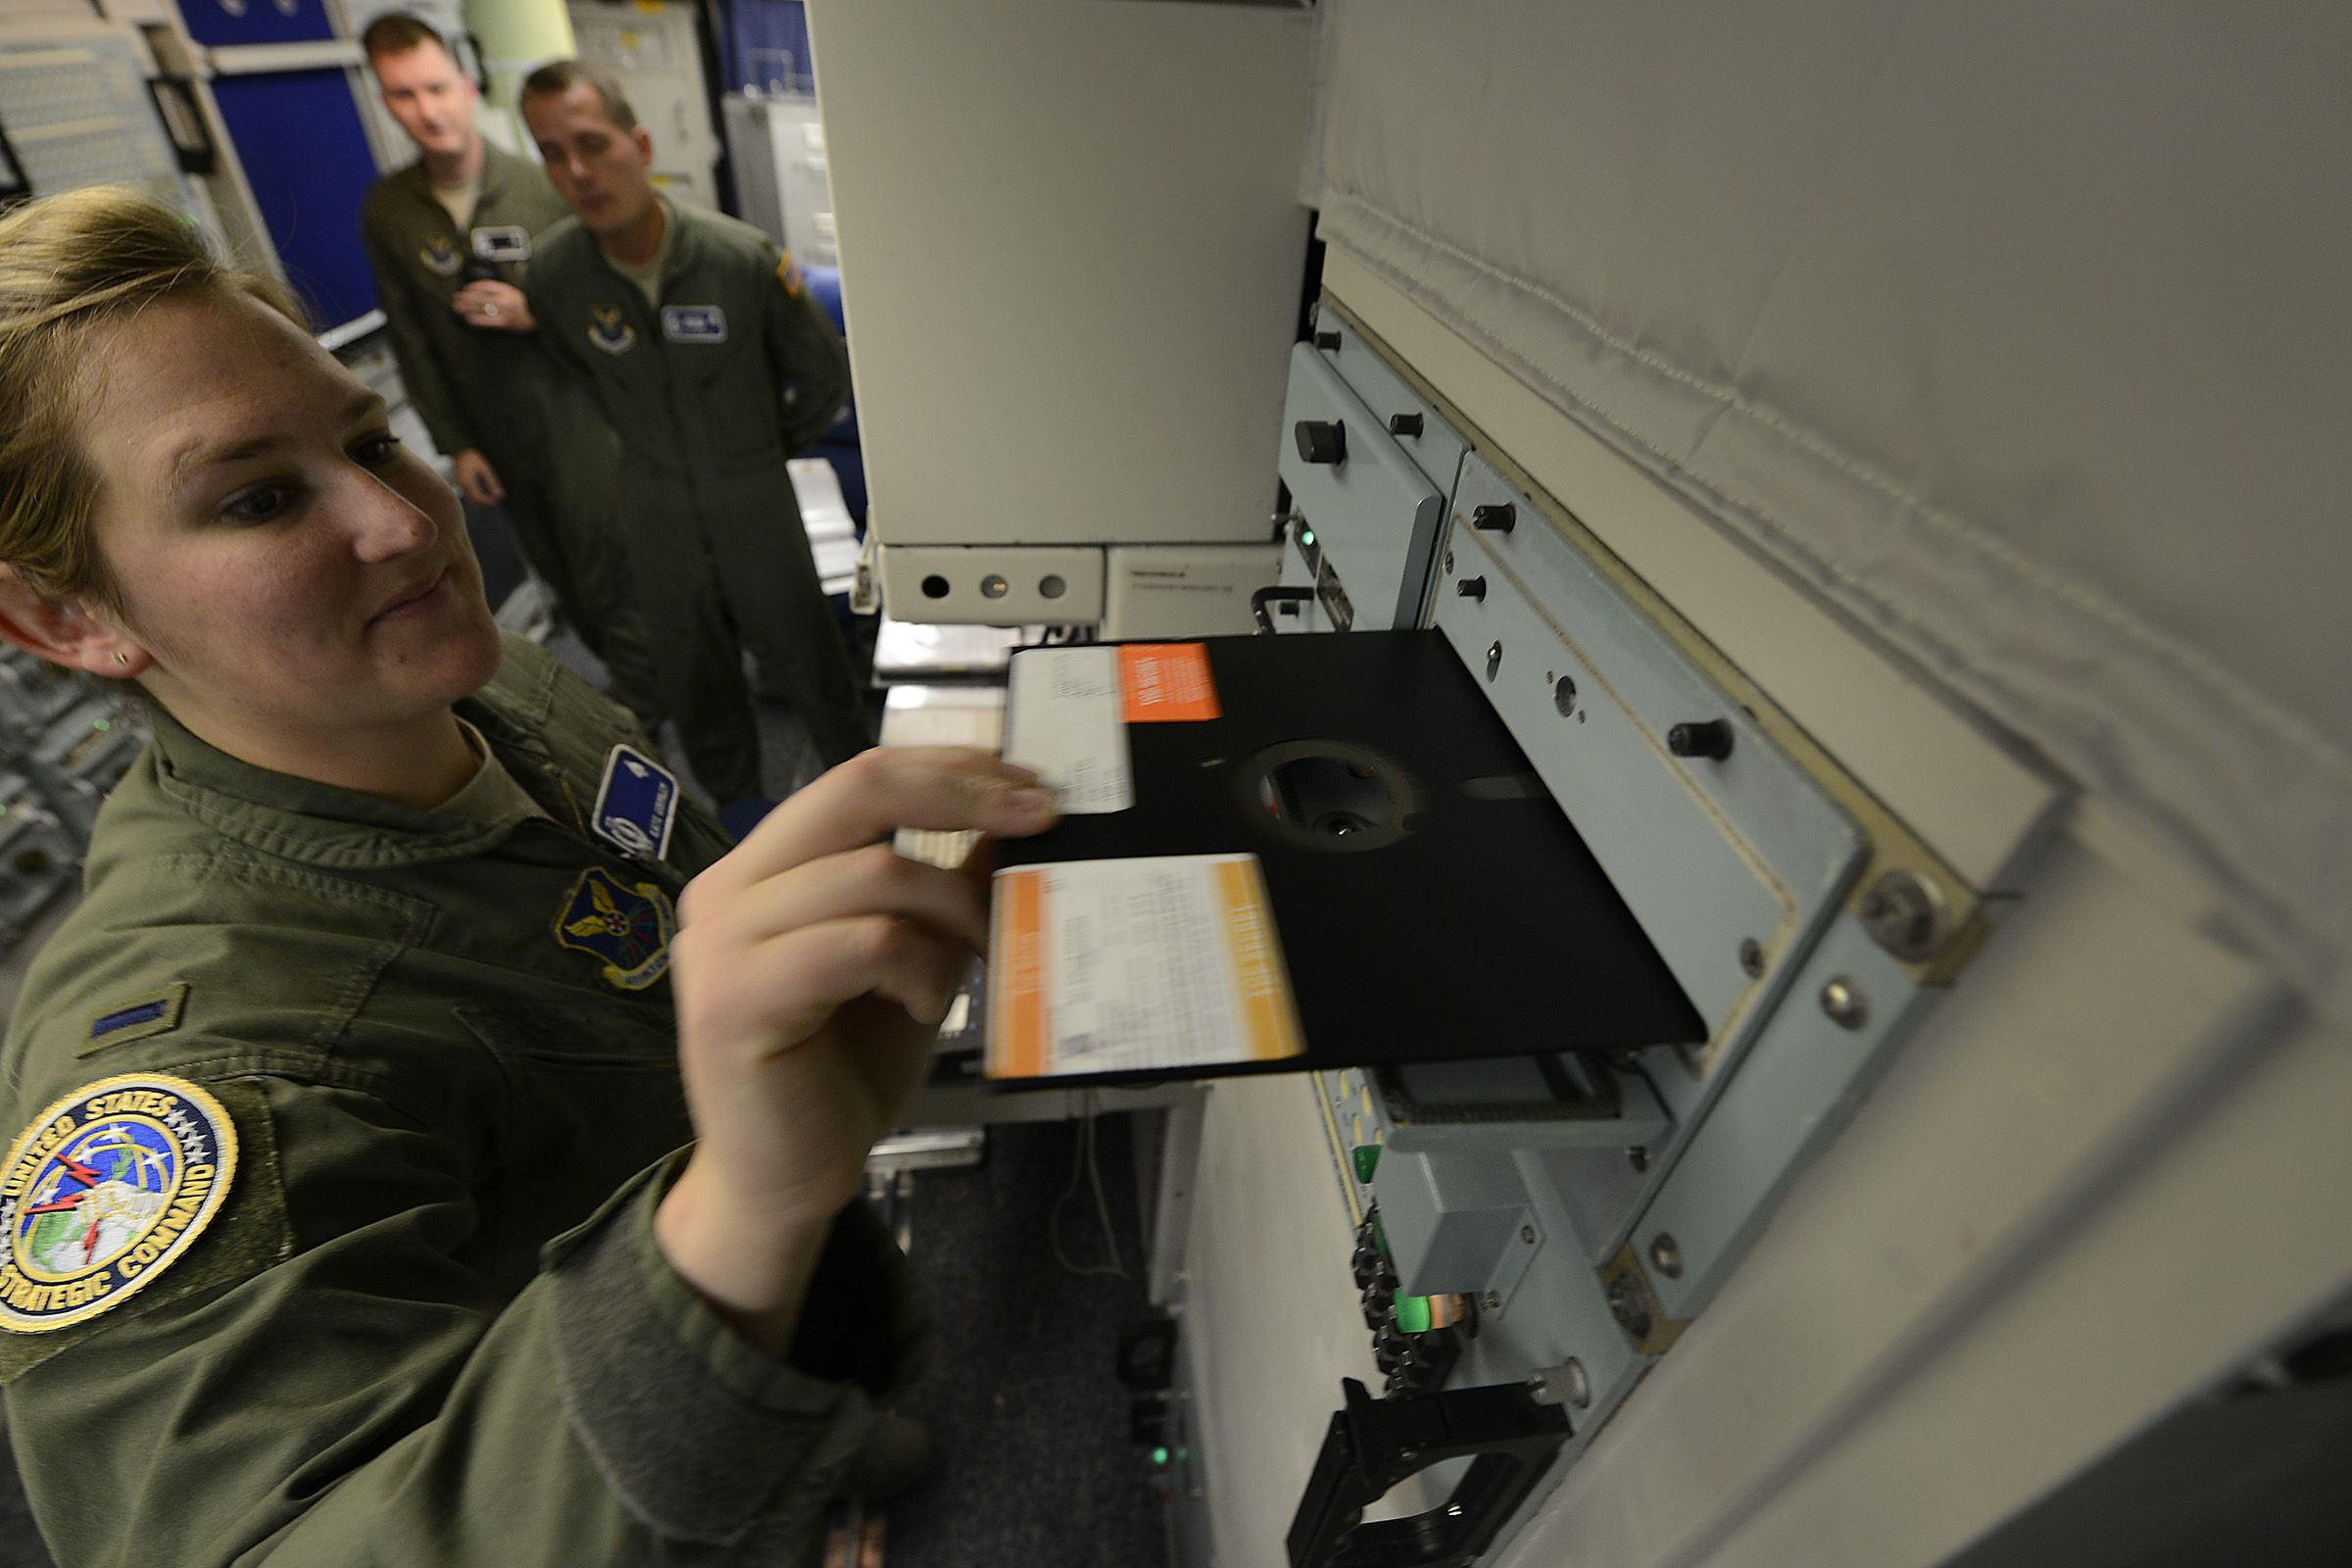 U.S. Air Force Finally Ditches 8-Inch Floppy Disks